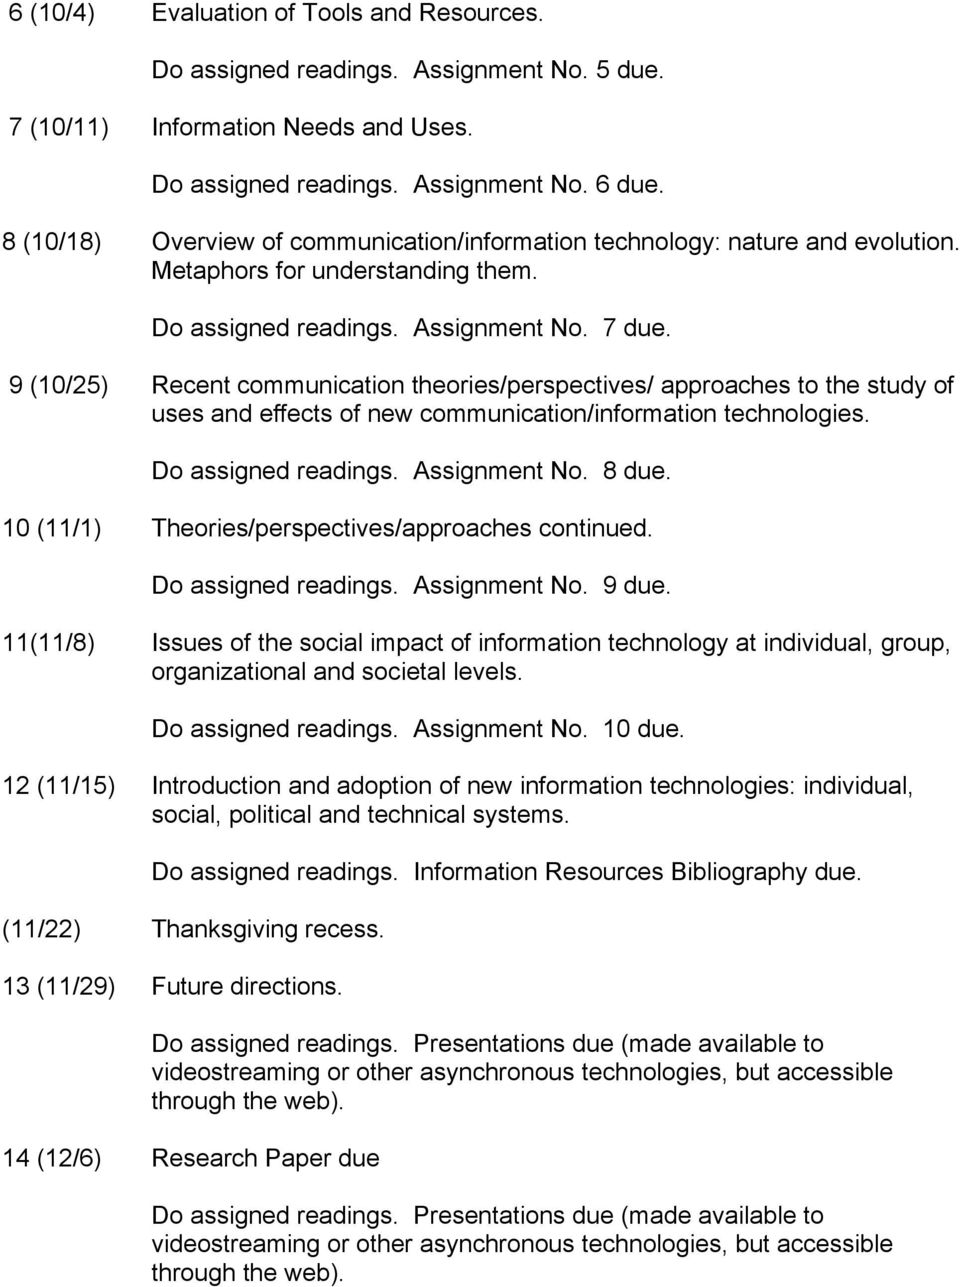 9 (10/25) Recent communication theories/perspectives/ approaches to the study of uses and effects of new communication/information technologies. Do assigned readings. Assignment No. 8 due.